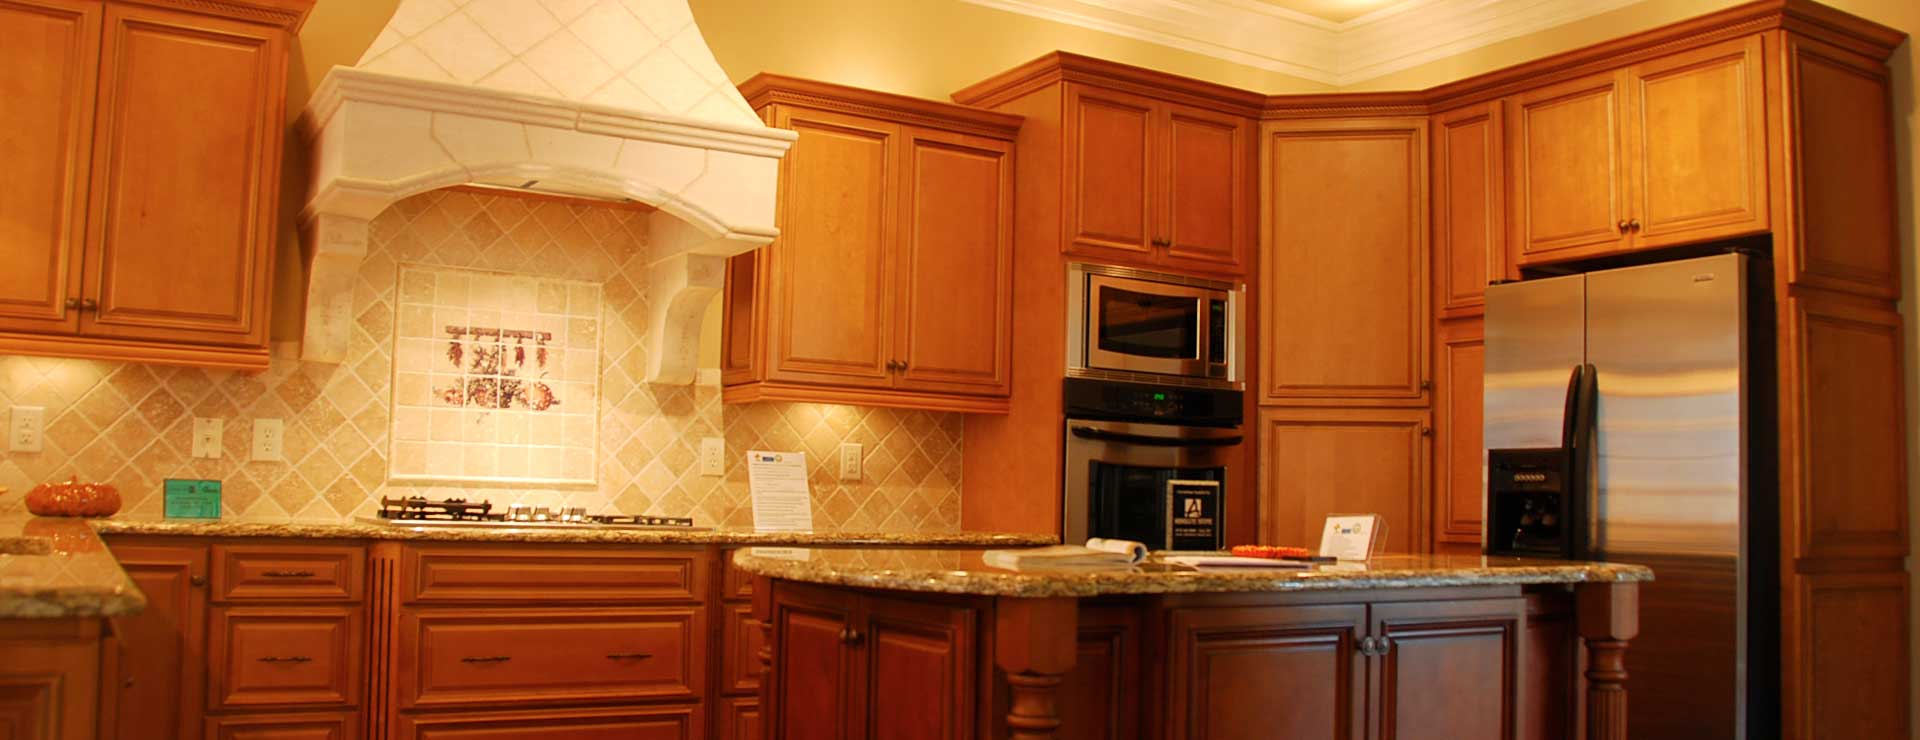 Kitchen cabinets 3 for Charlotte kitchen cabinets